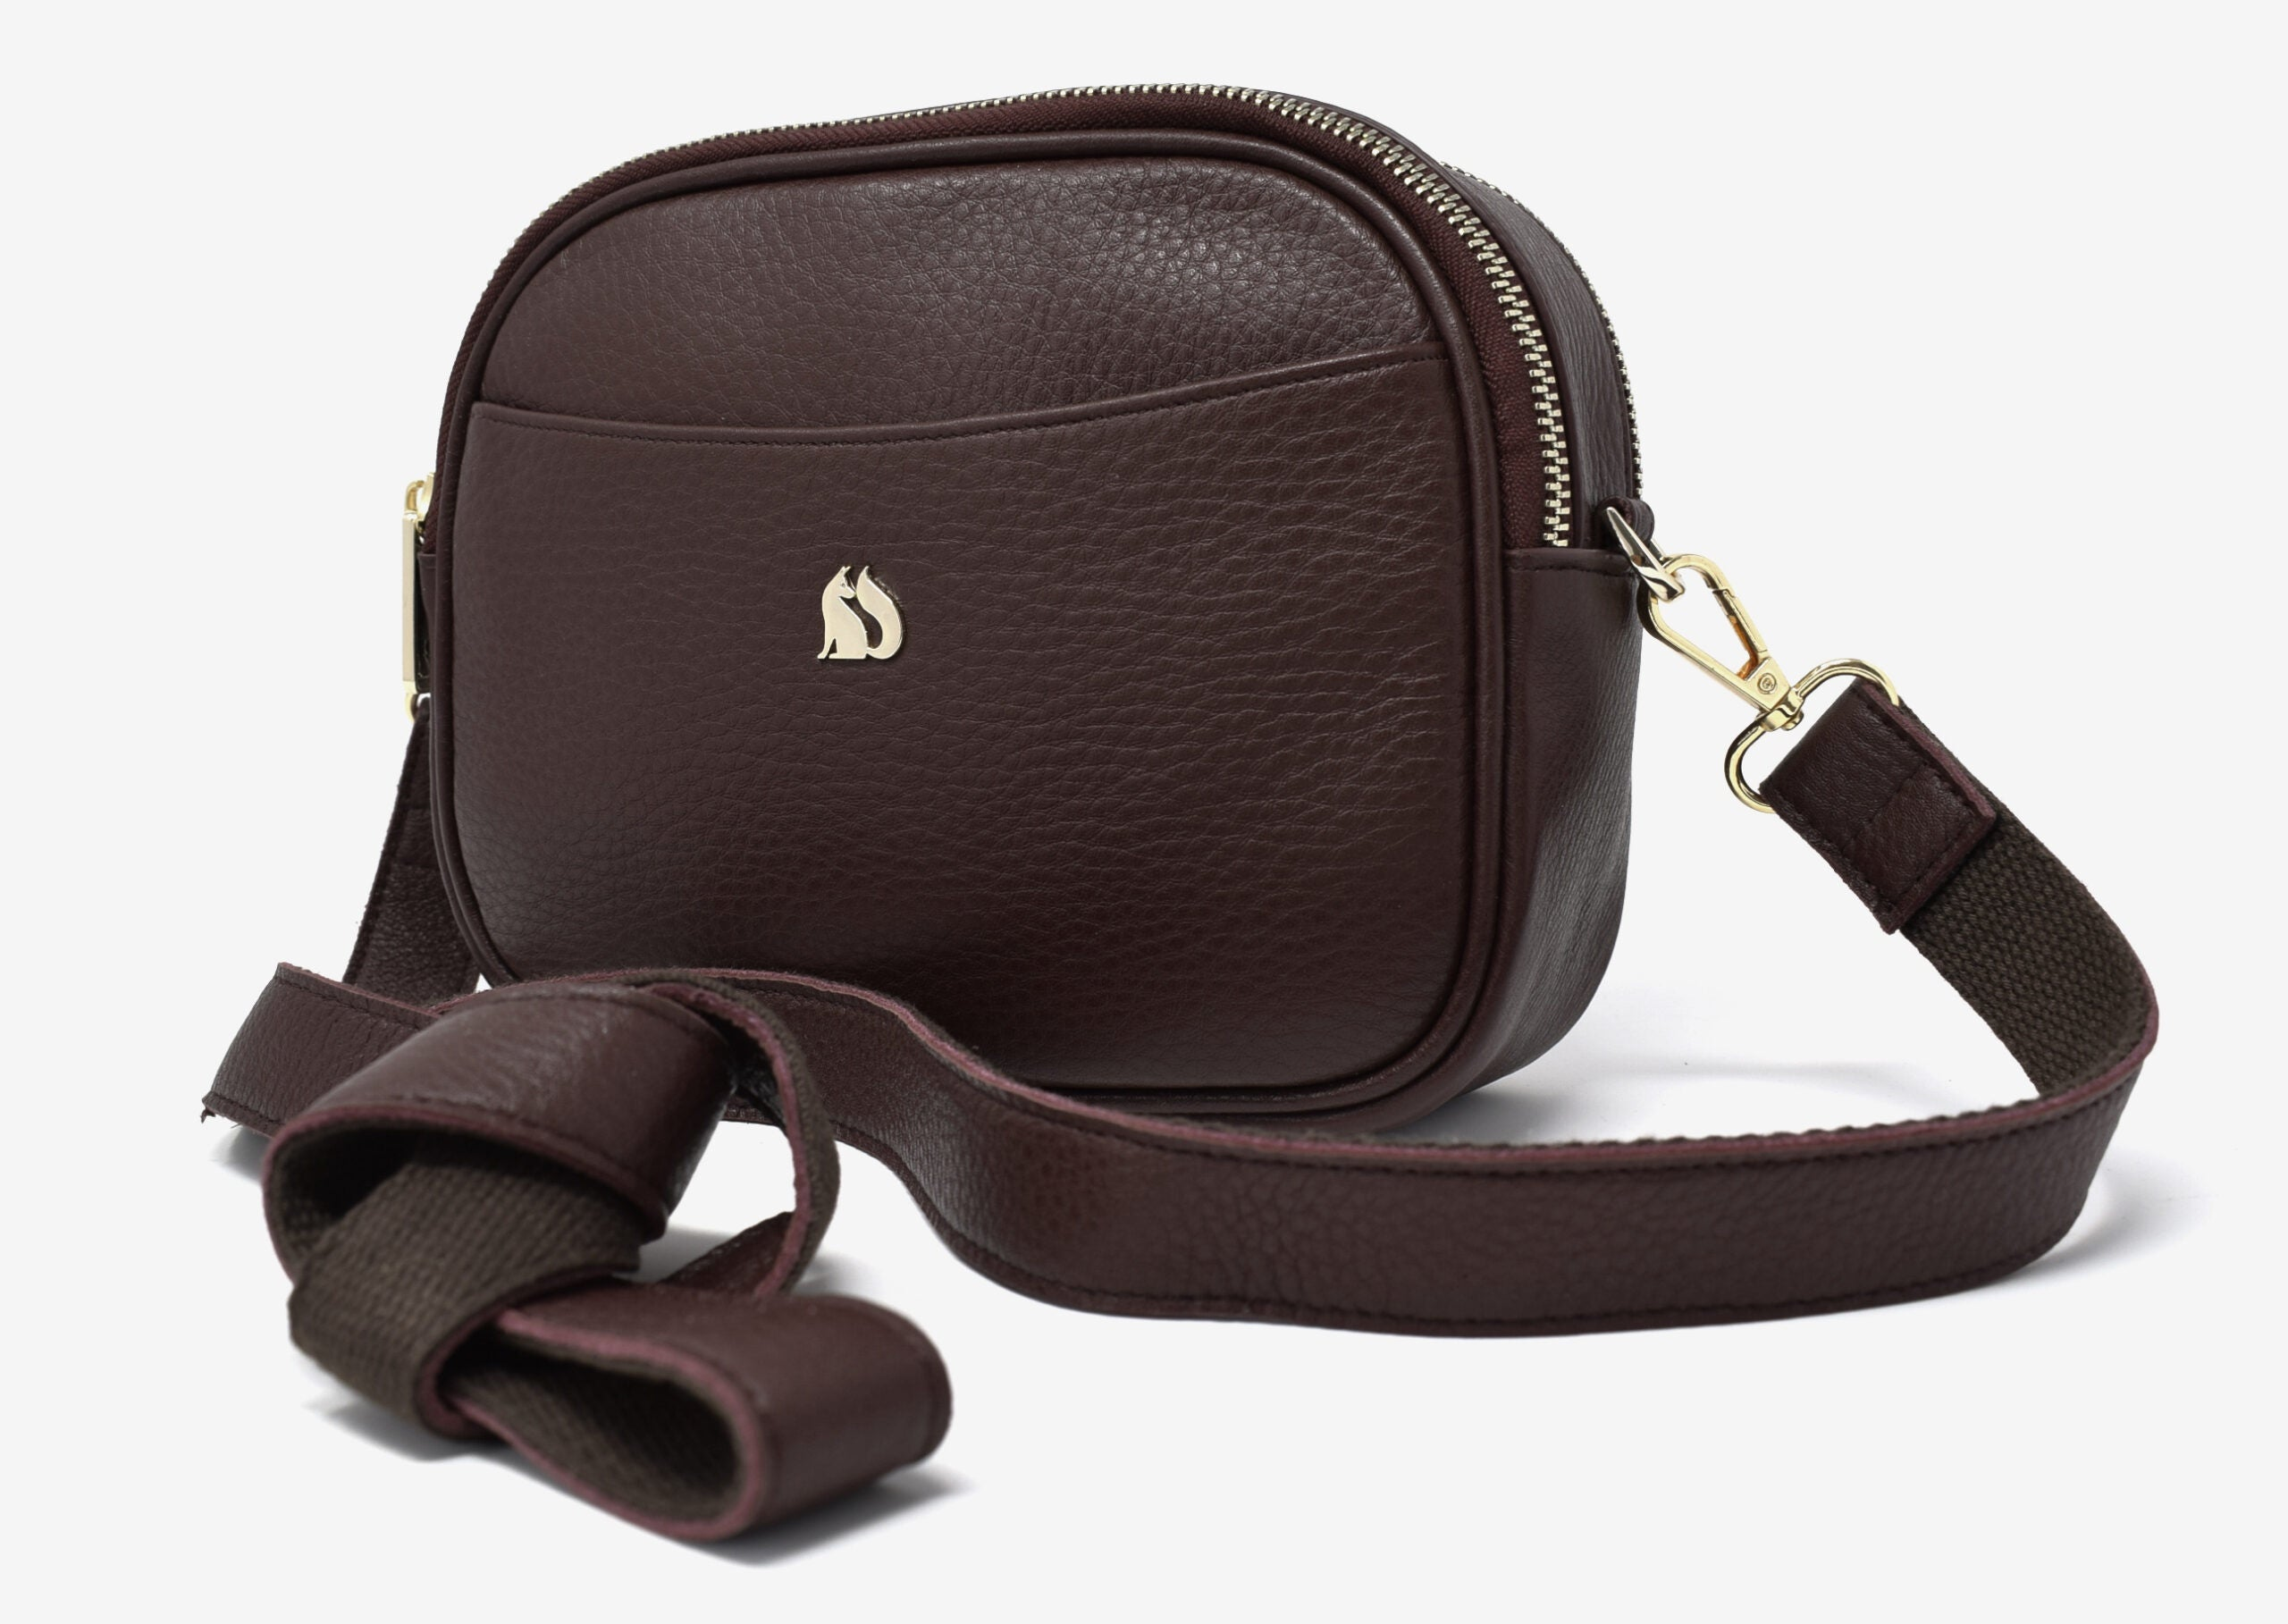 Foxfield - Keswick Brown Leather Cross Body Bag